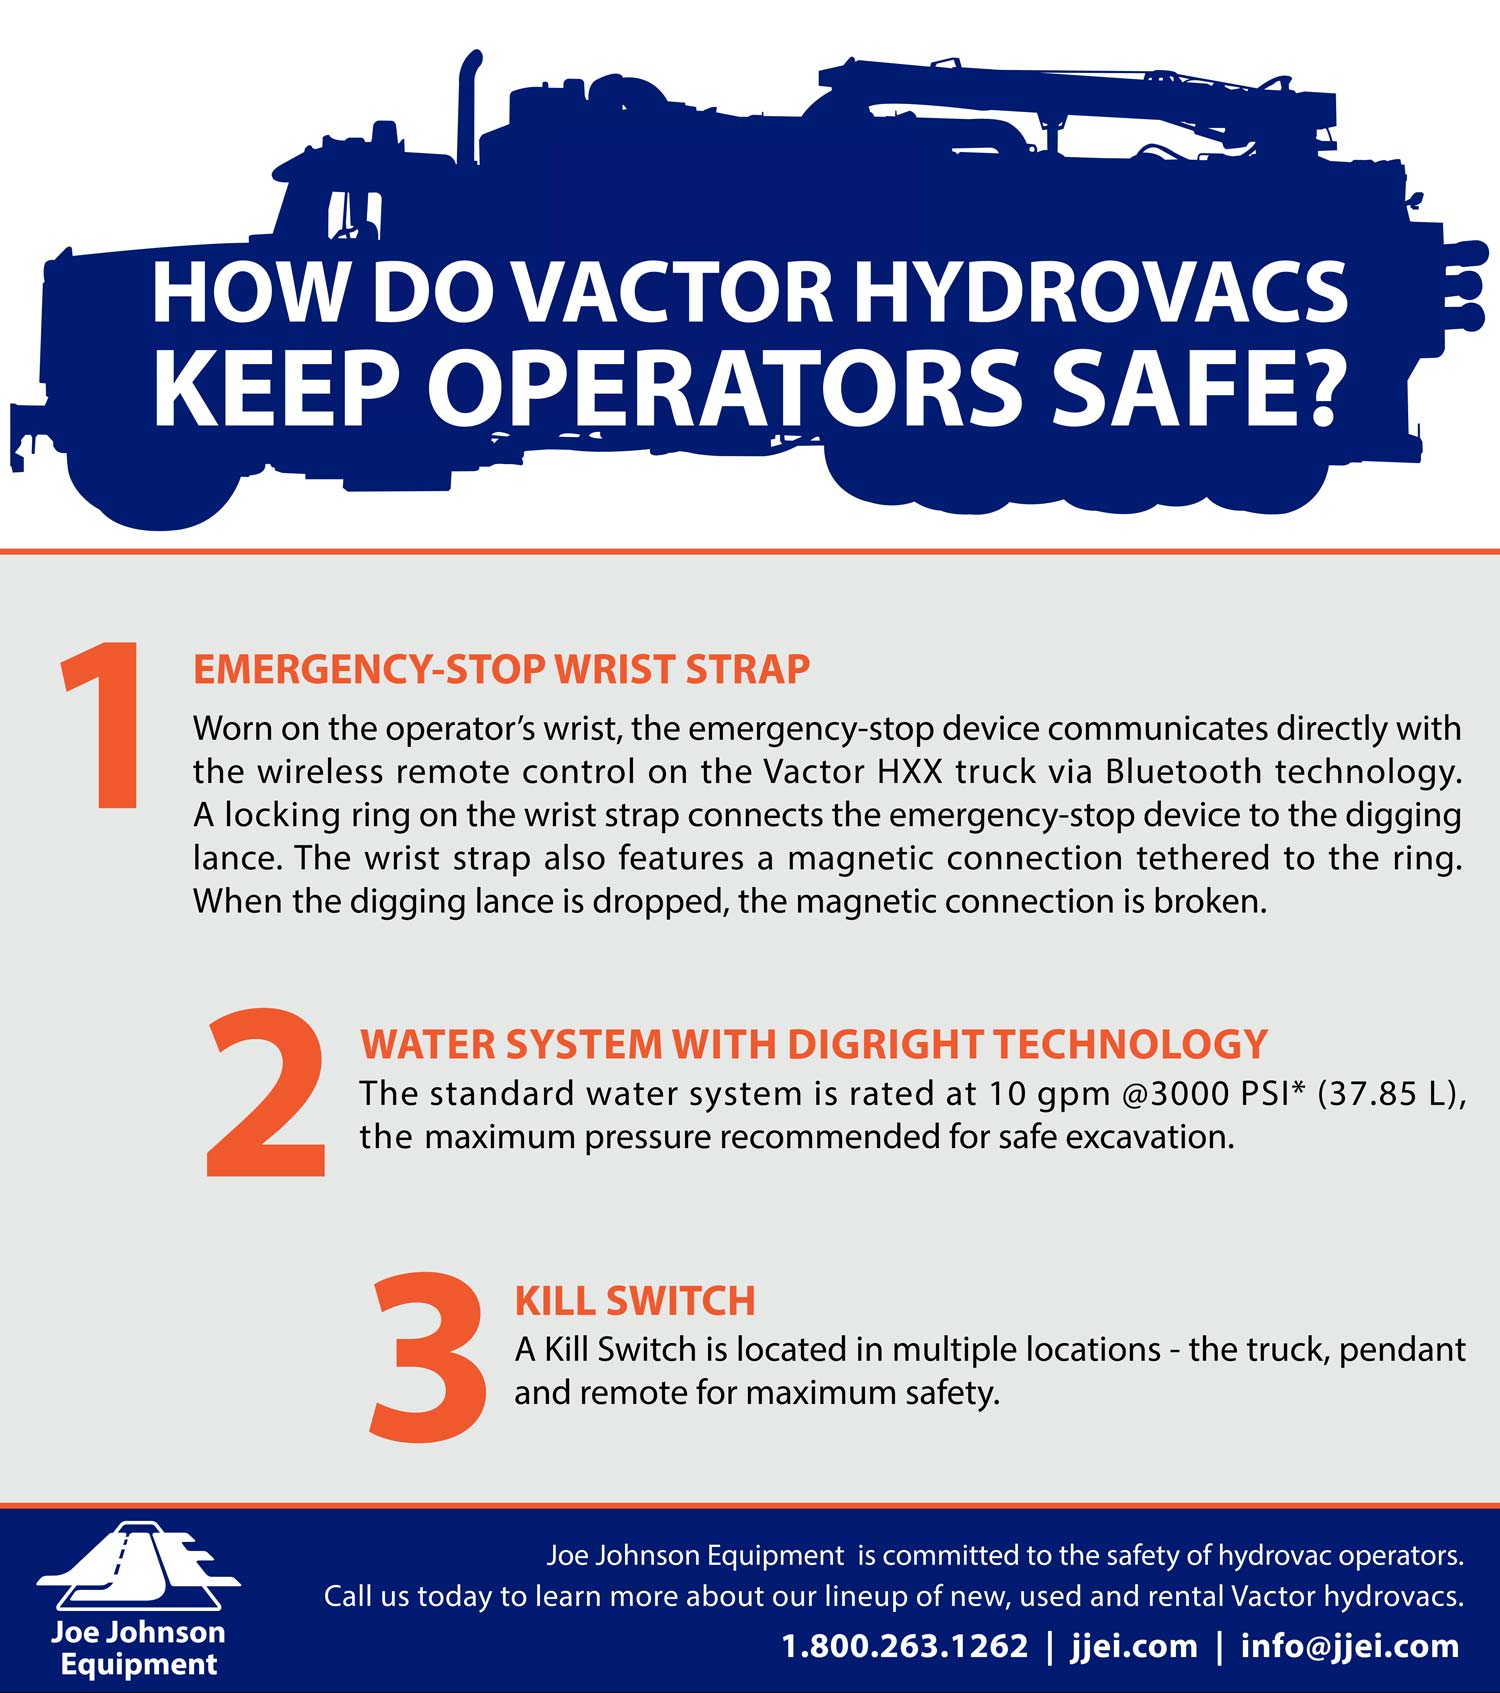 Joe Johnson Infographic - Vactor Hydrovac Safety